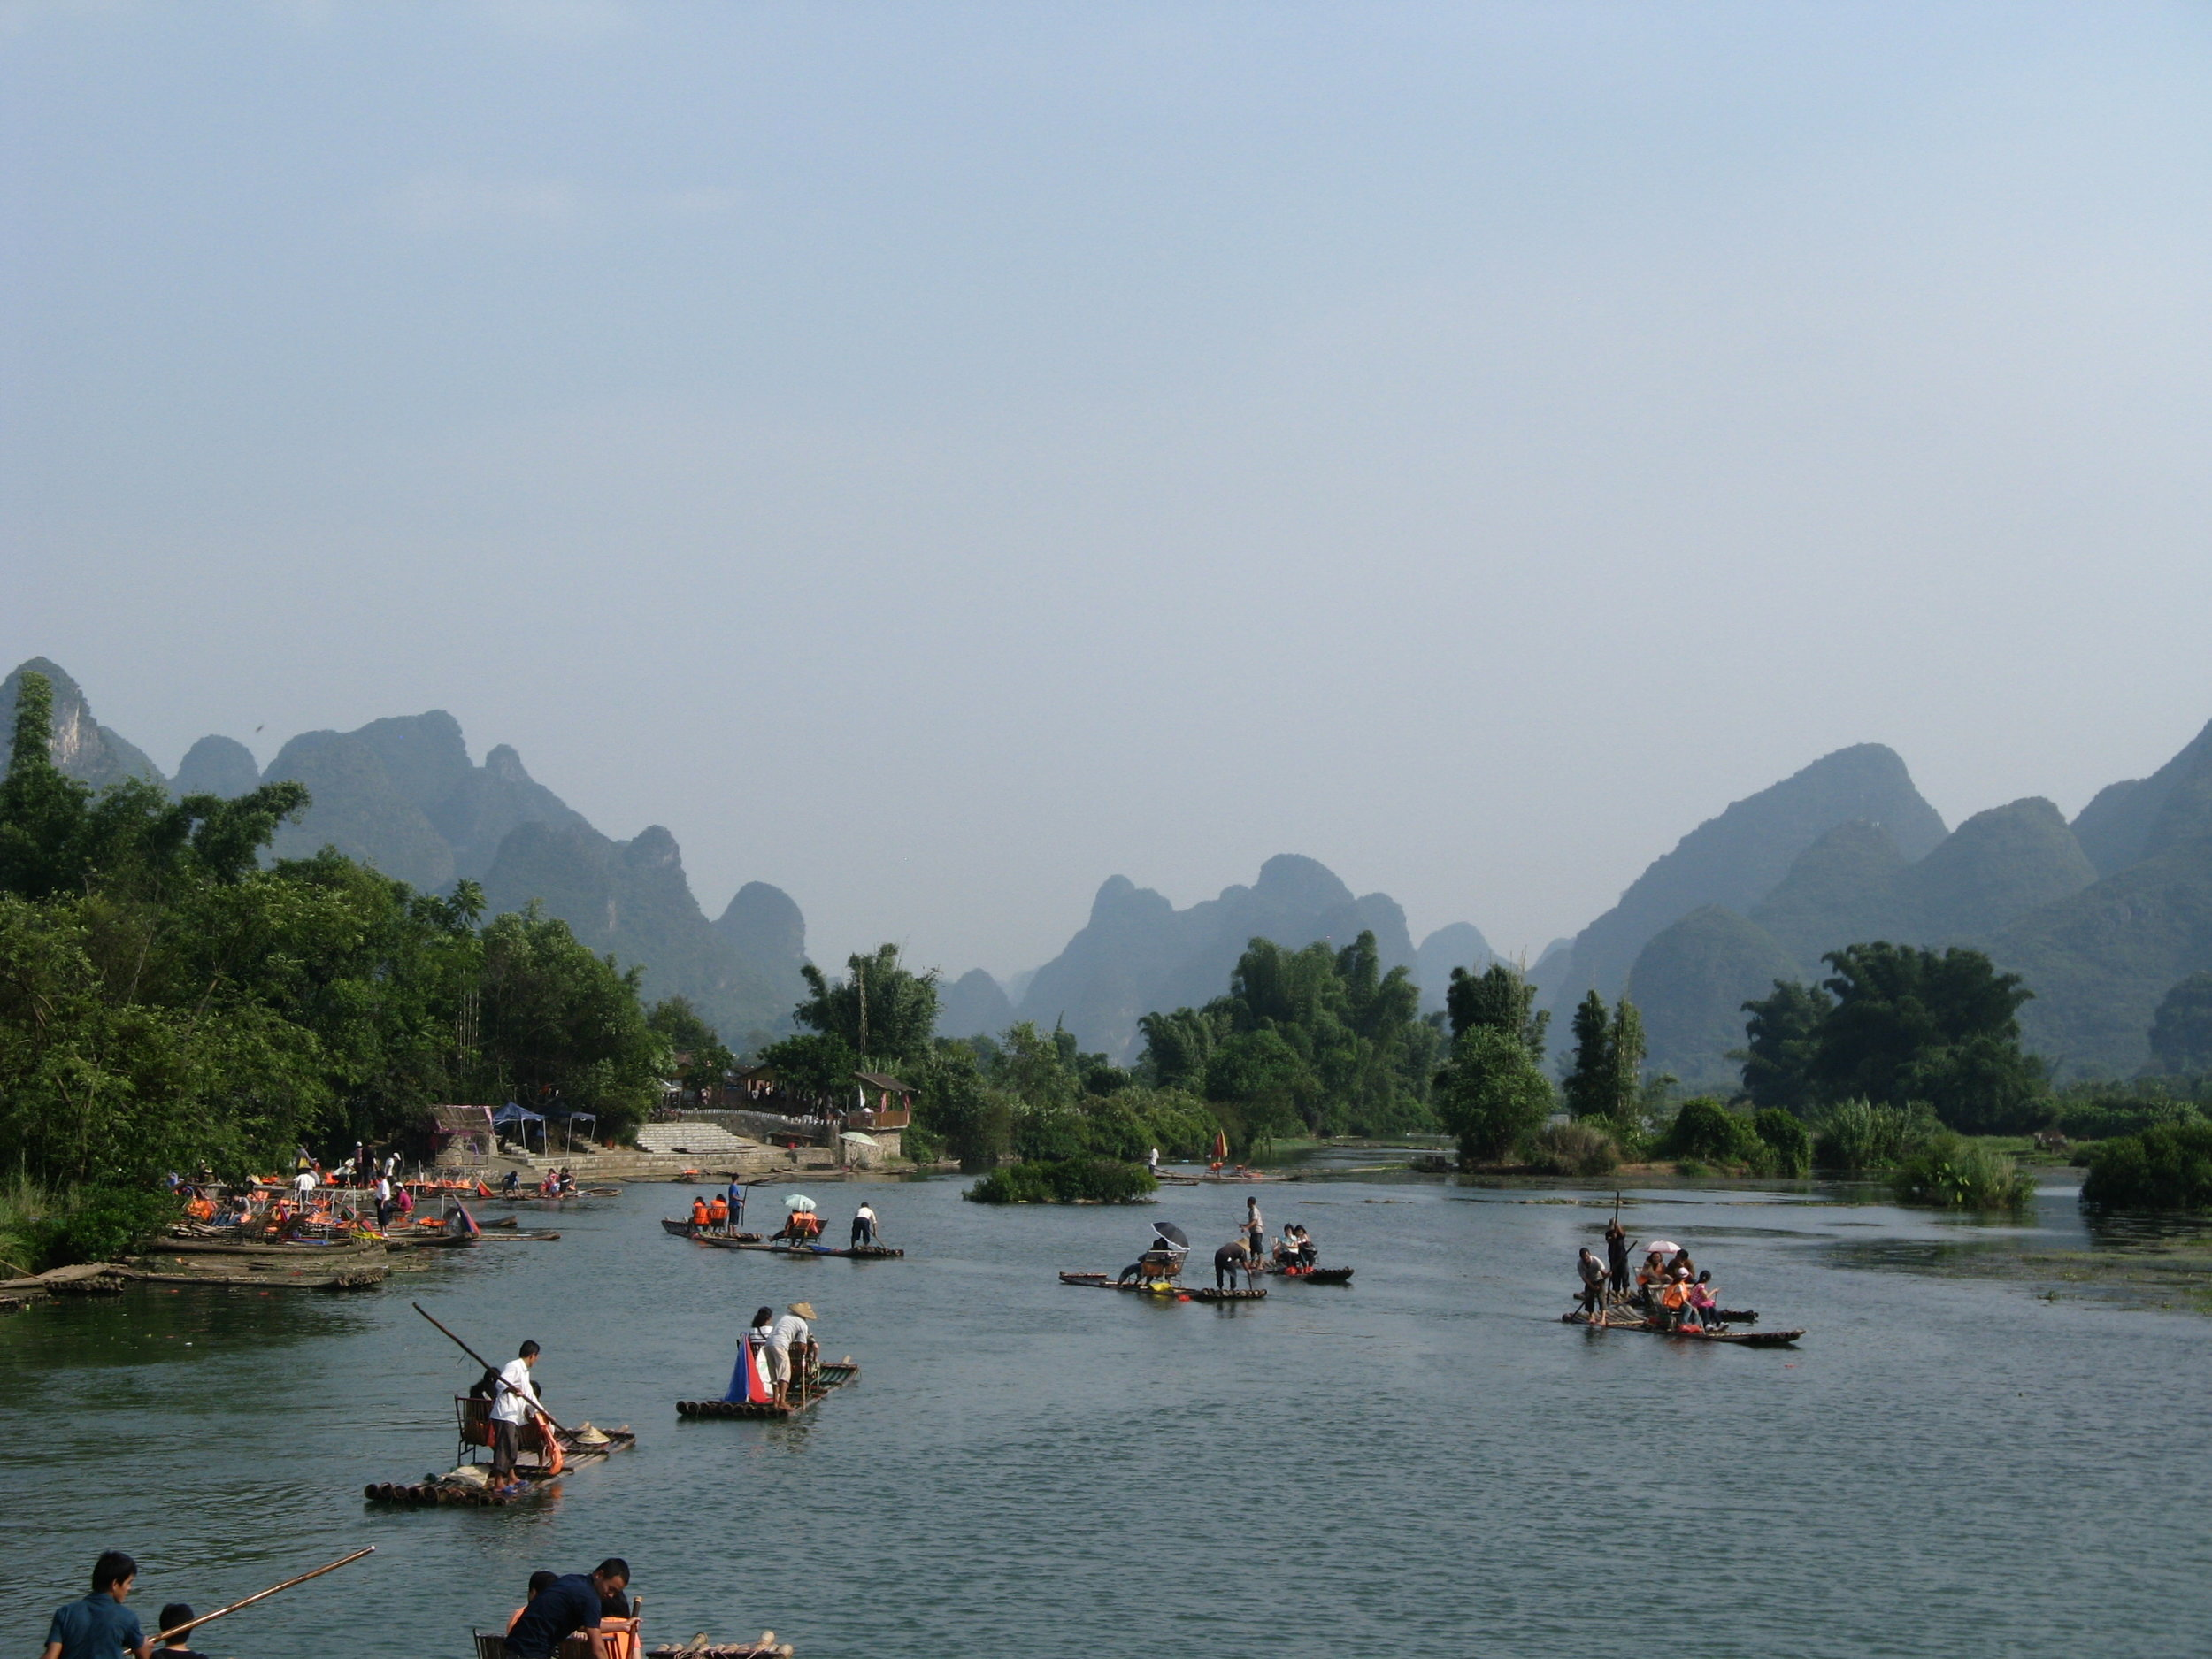 Take a leisurely Bamboo Raft down the Dragon River flanked by some imppressive karst mountains